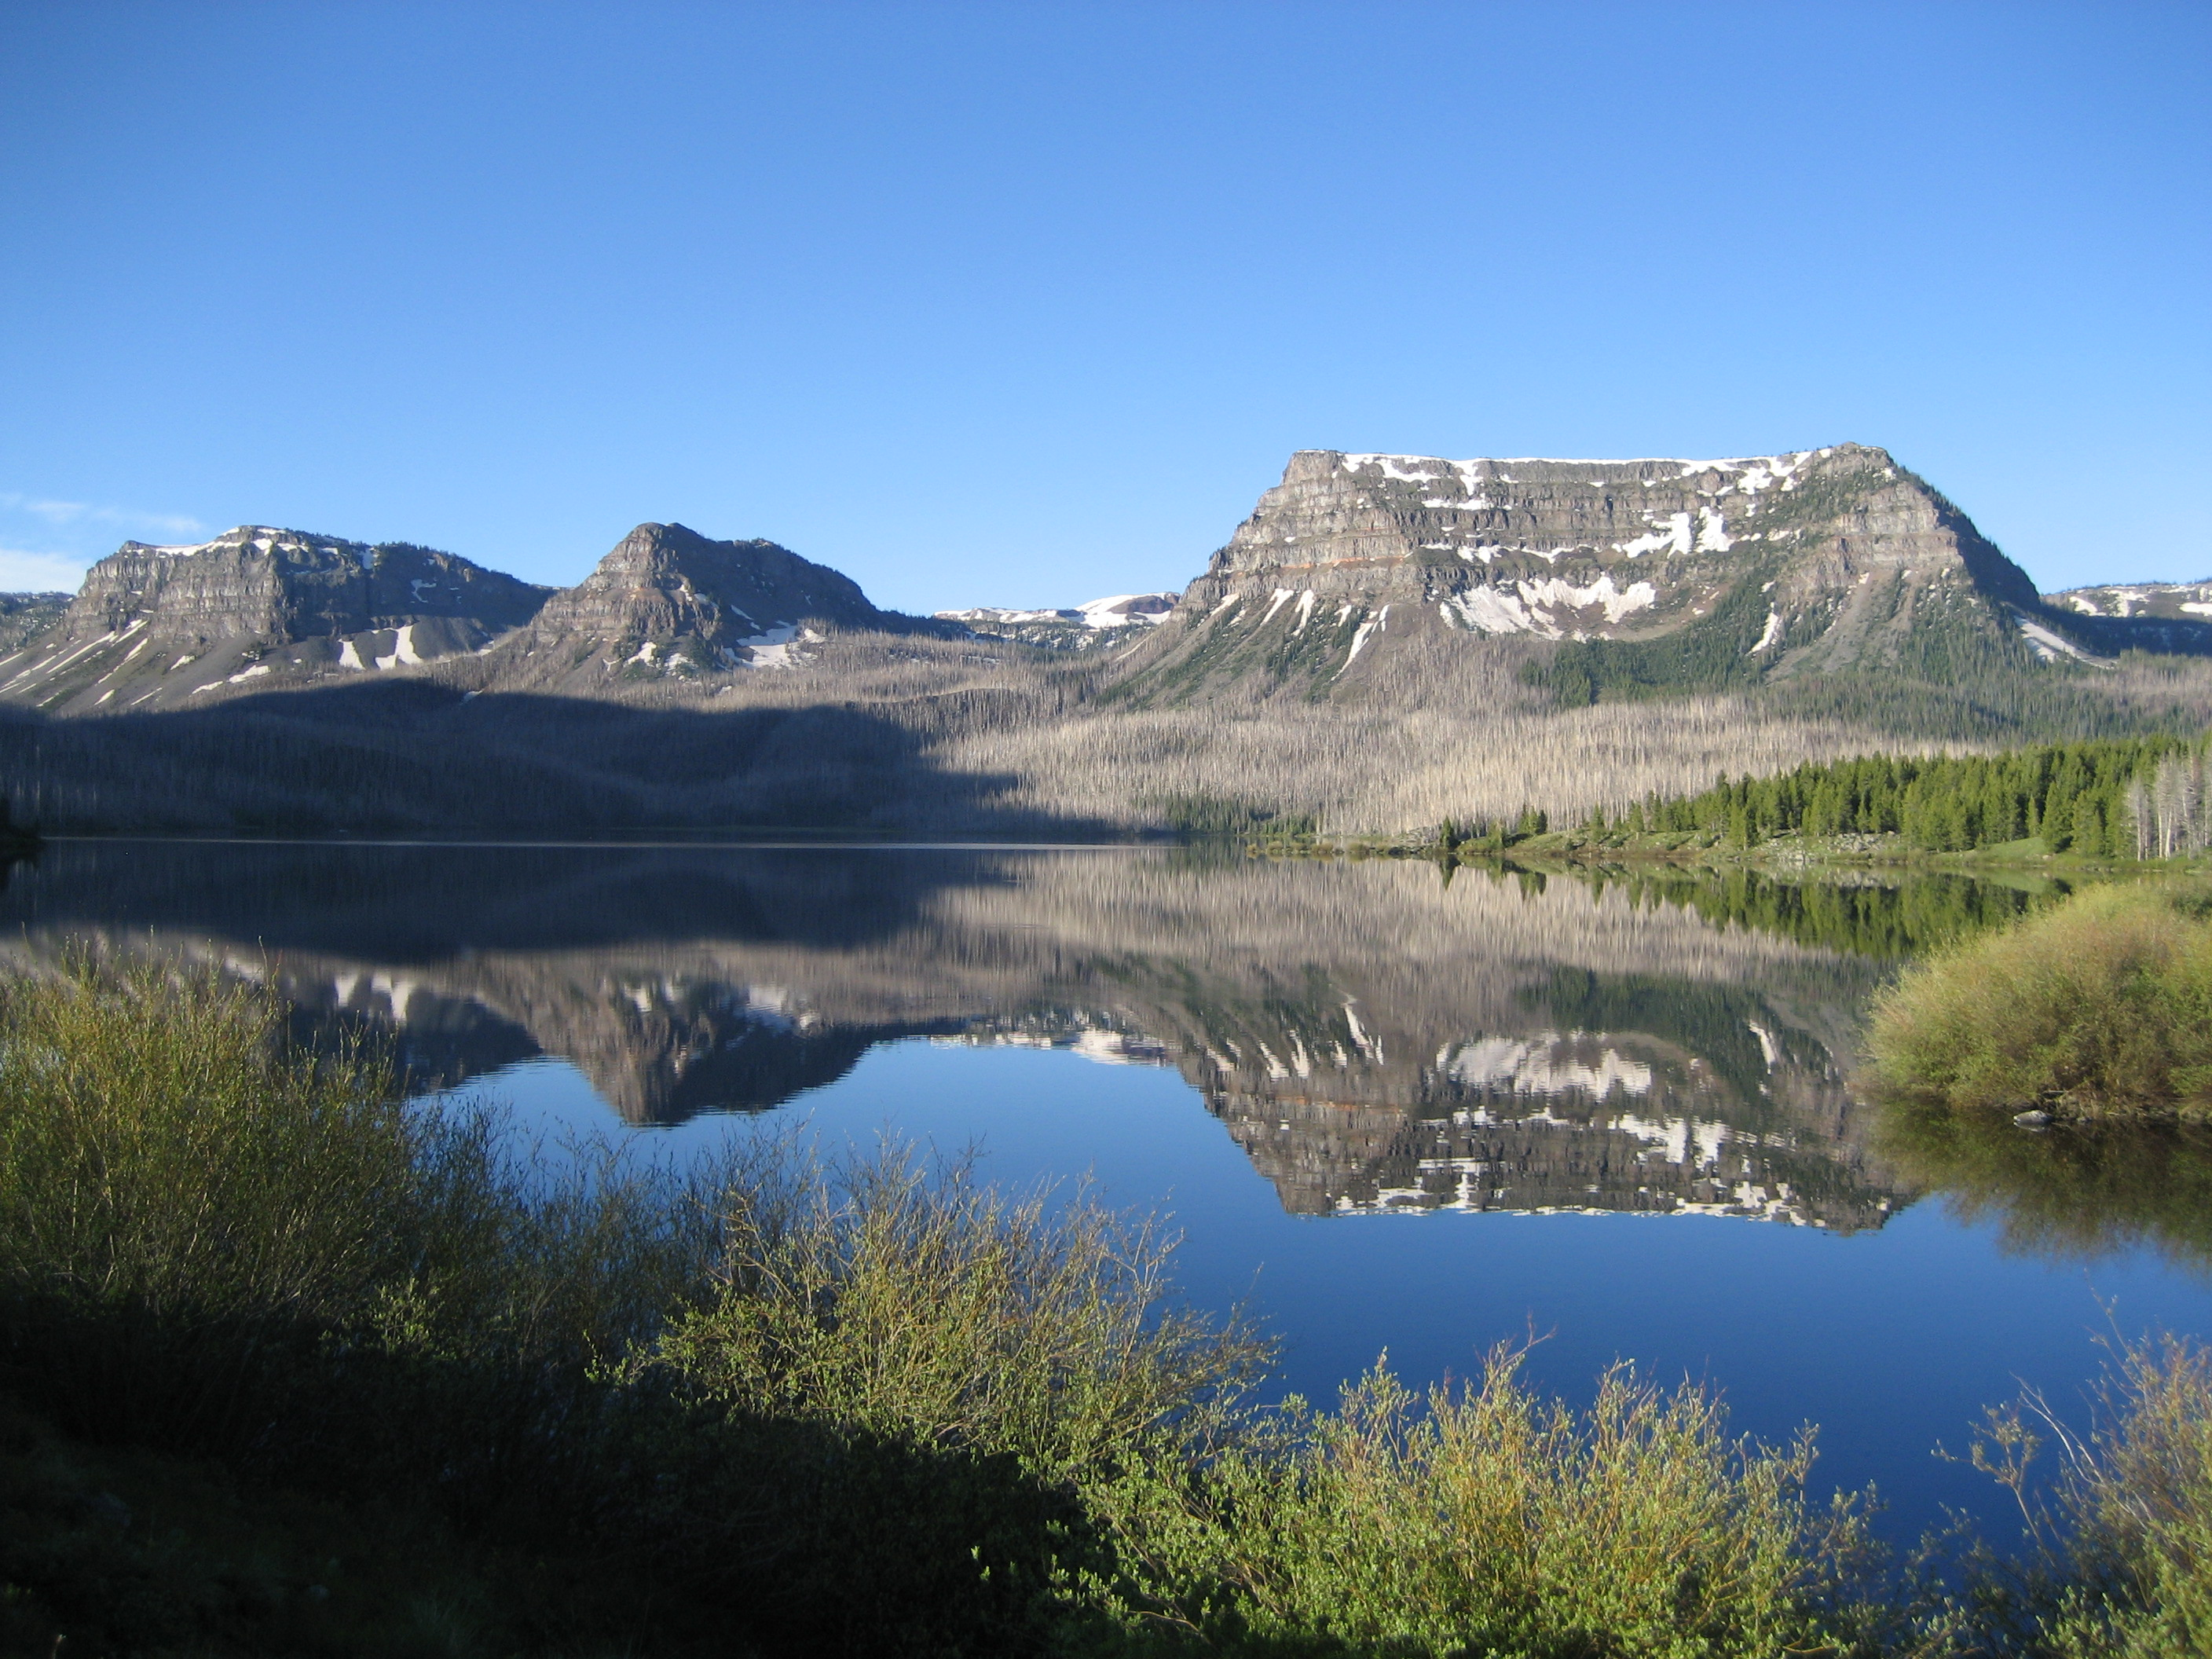 Trappers Lake and the Flattops Wilderness Area